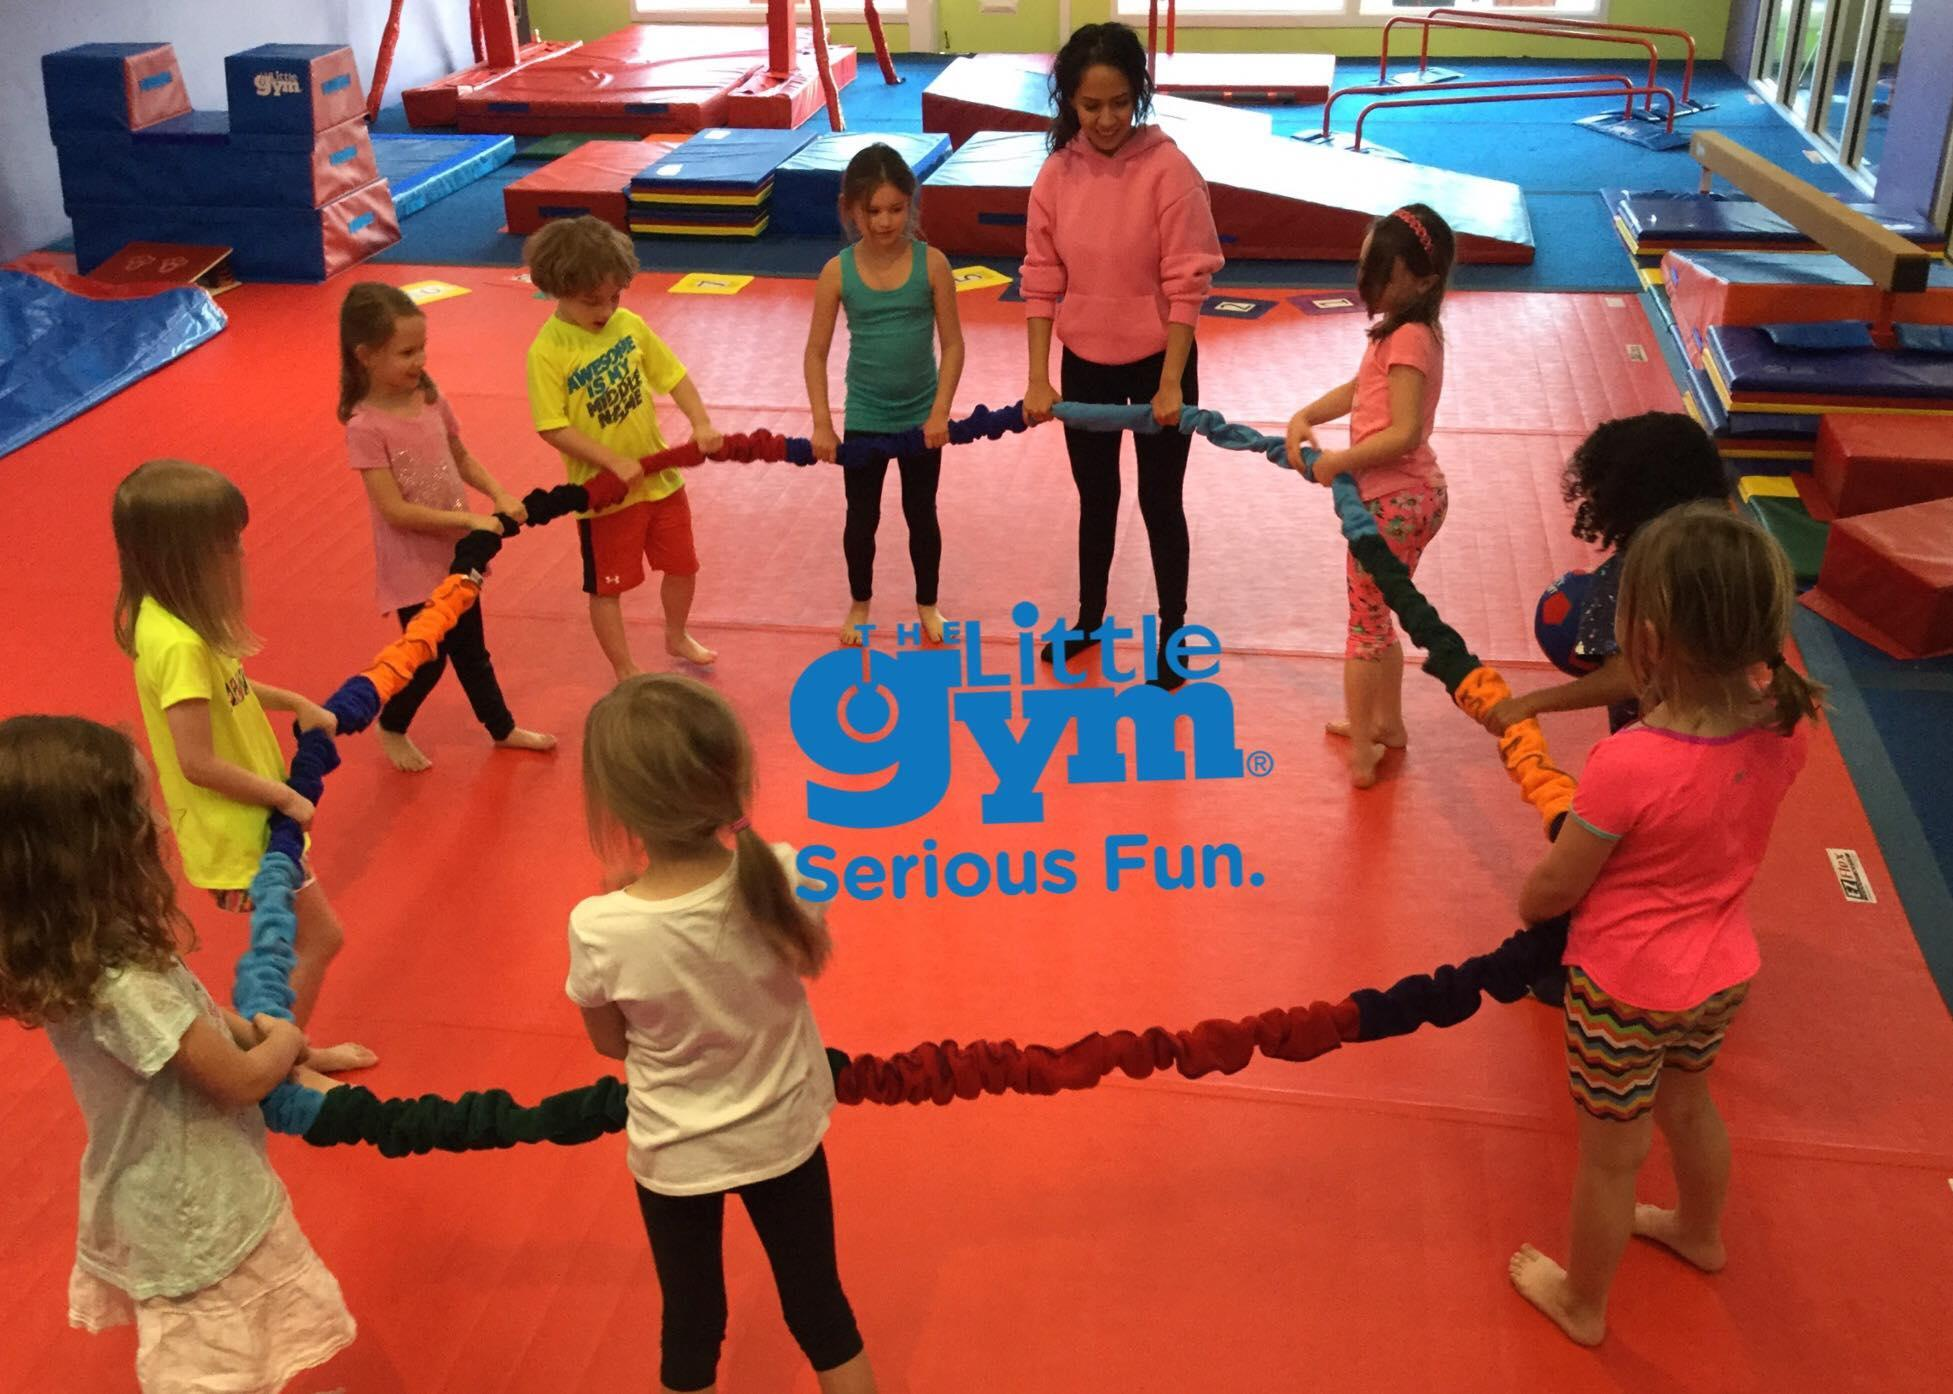 The Little Gym is a gymnastics-based program for children aged 4 months to 12 years old to introduce children to physical activity in a fun environment to help with fitness, learning and early muspace.ml: Thelittlegym.